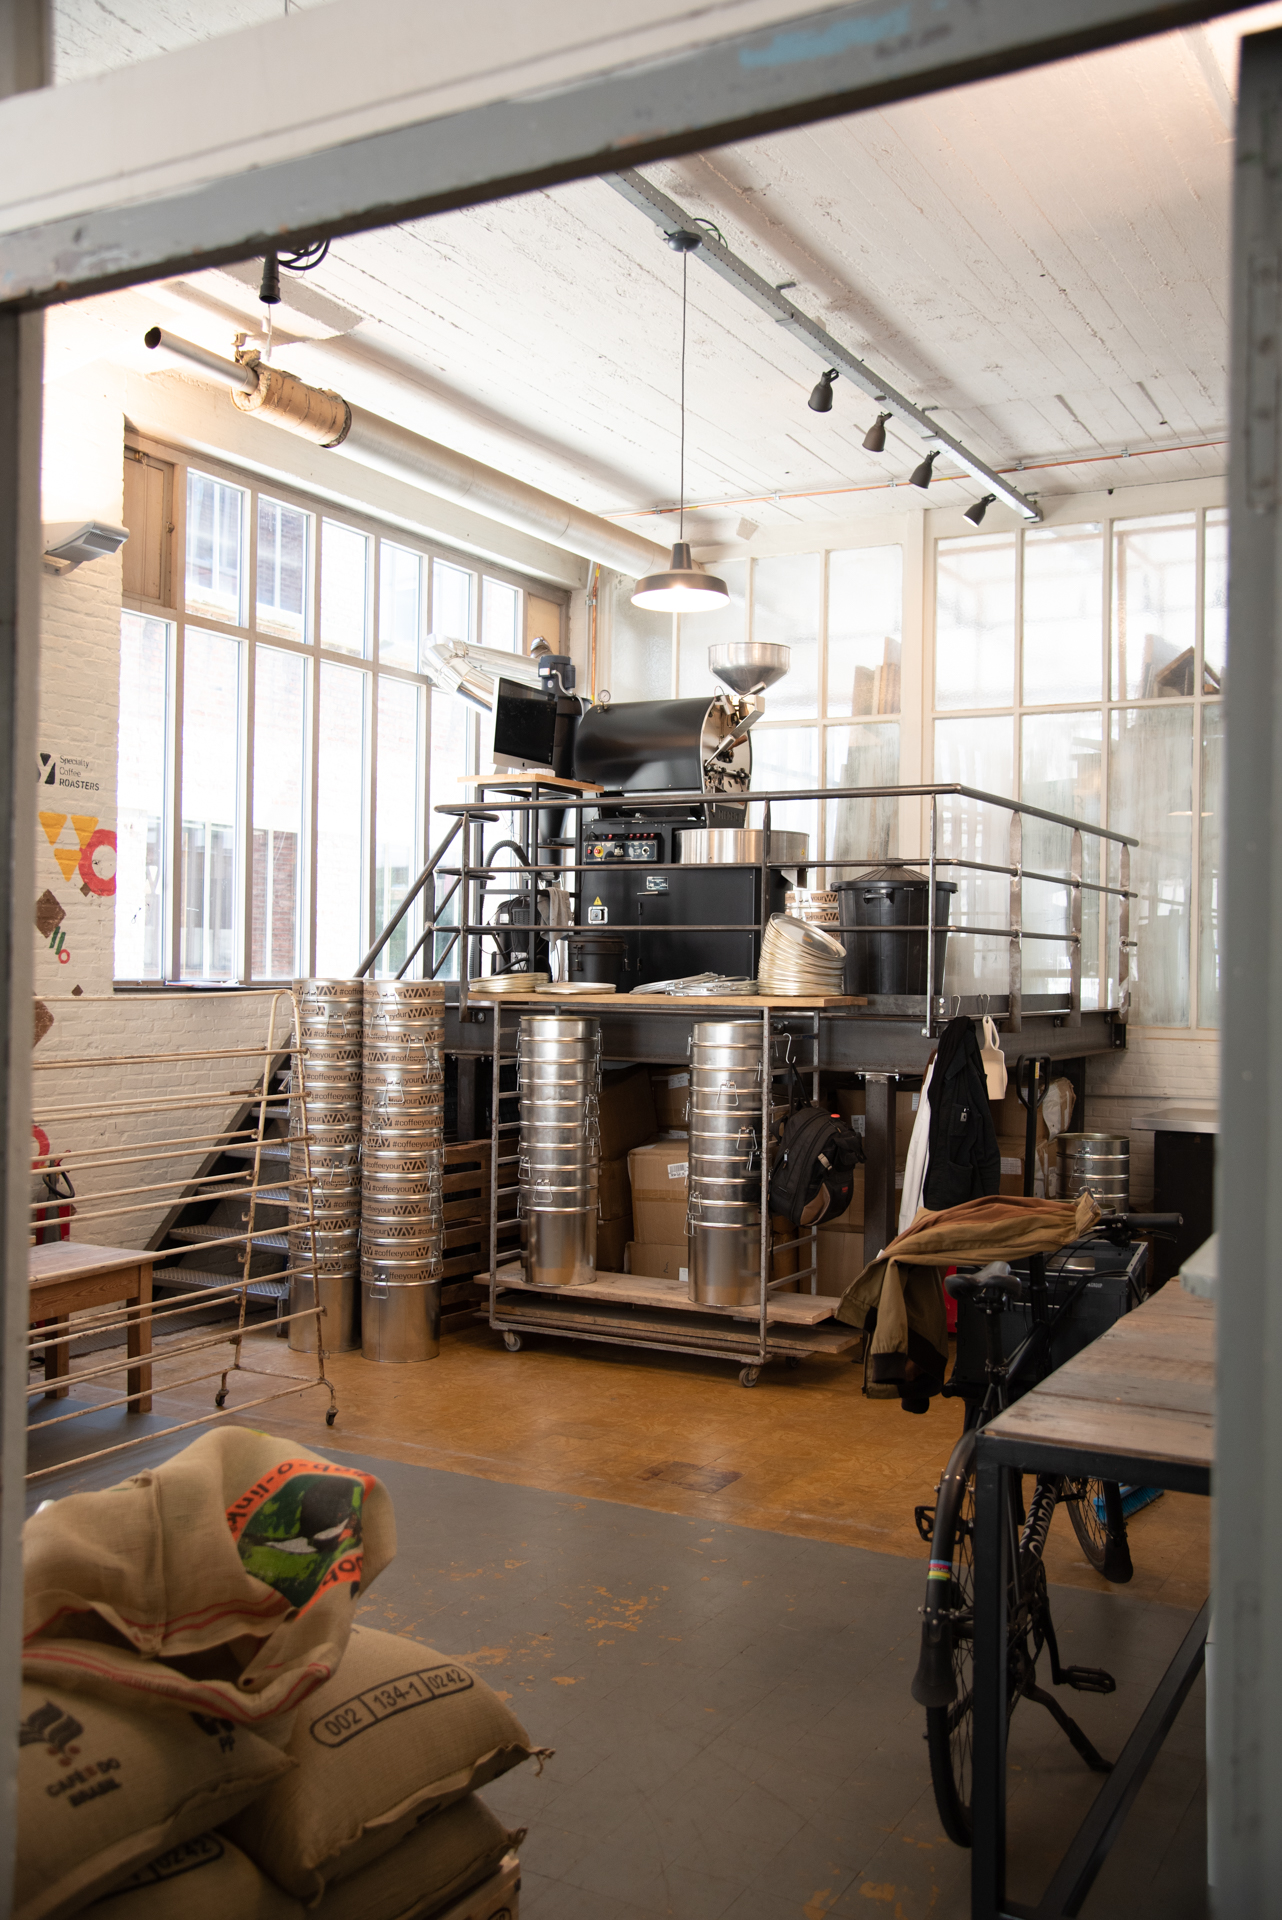 WAY – Specialty Coffee Roasters in Ghent